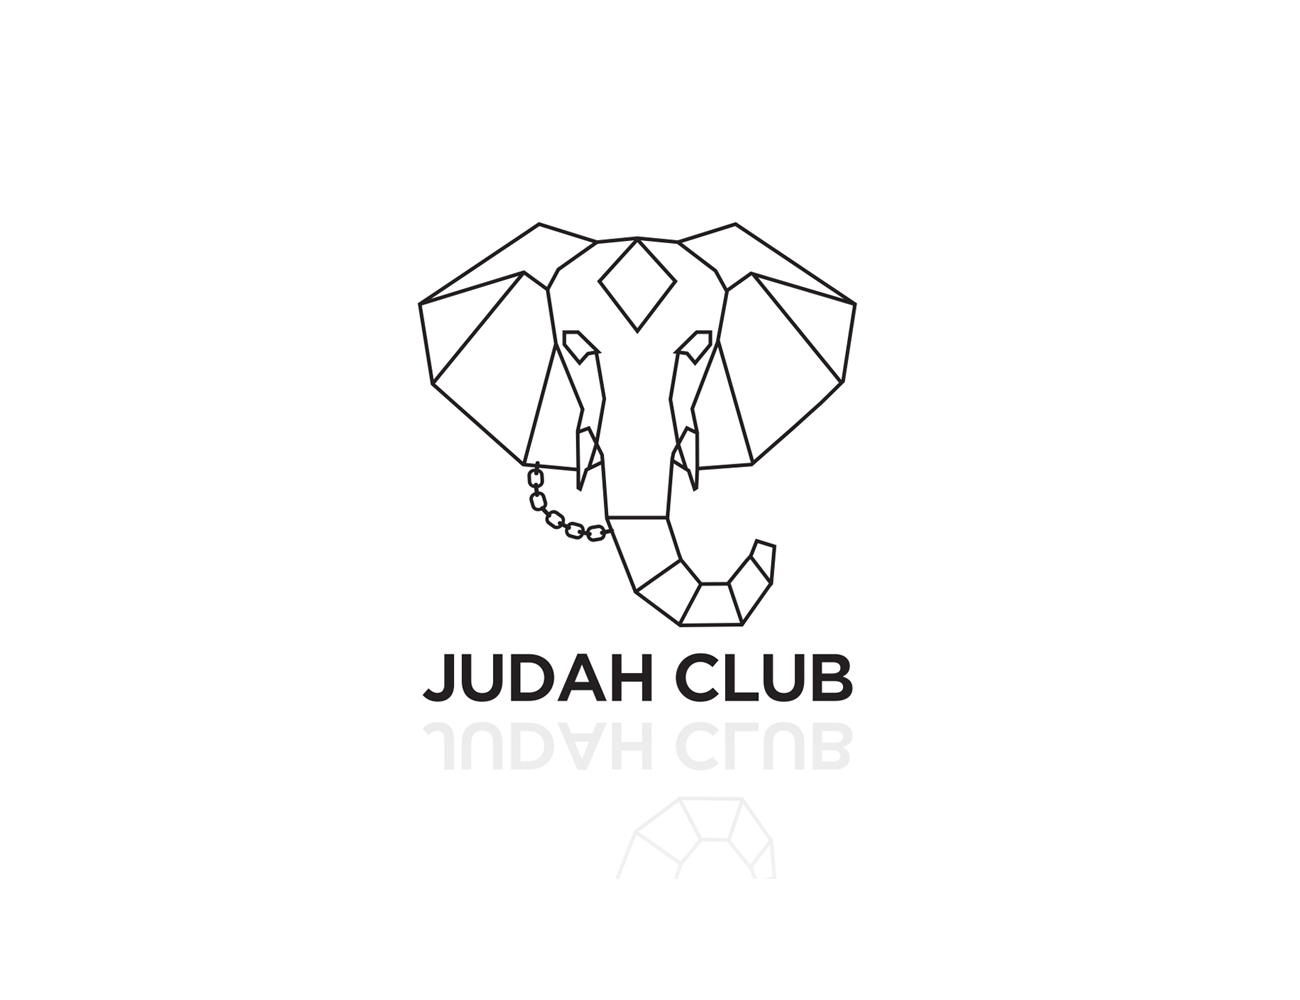 judahclublogodesign1